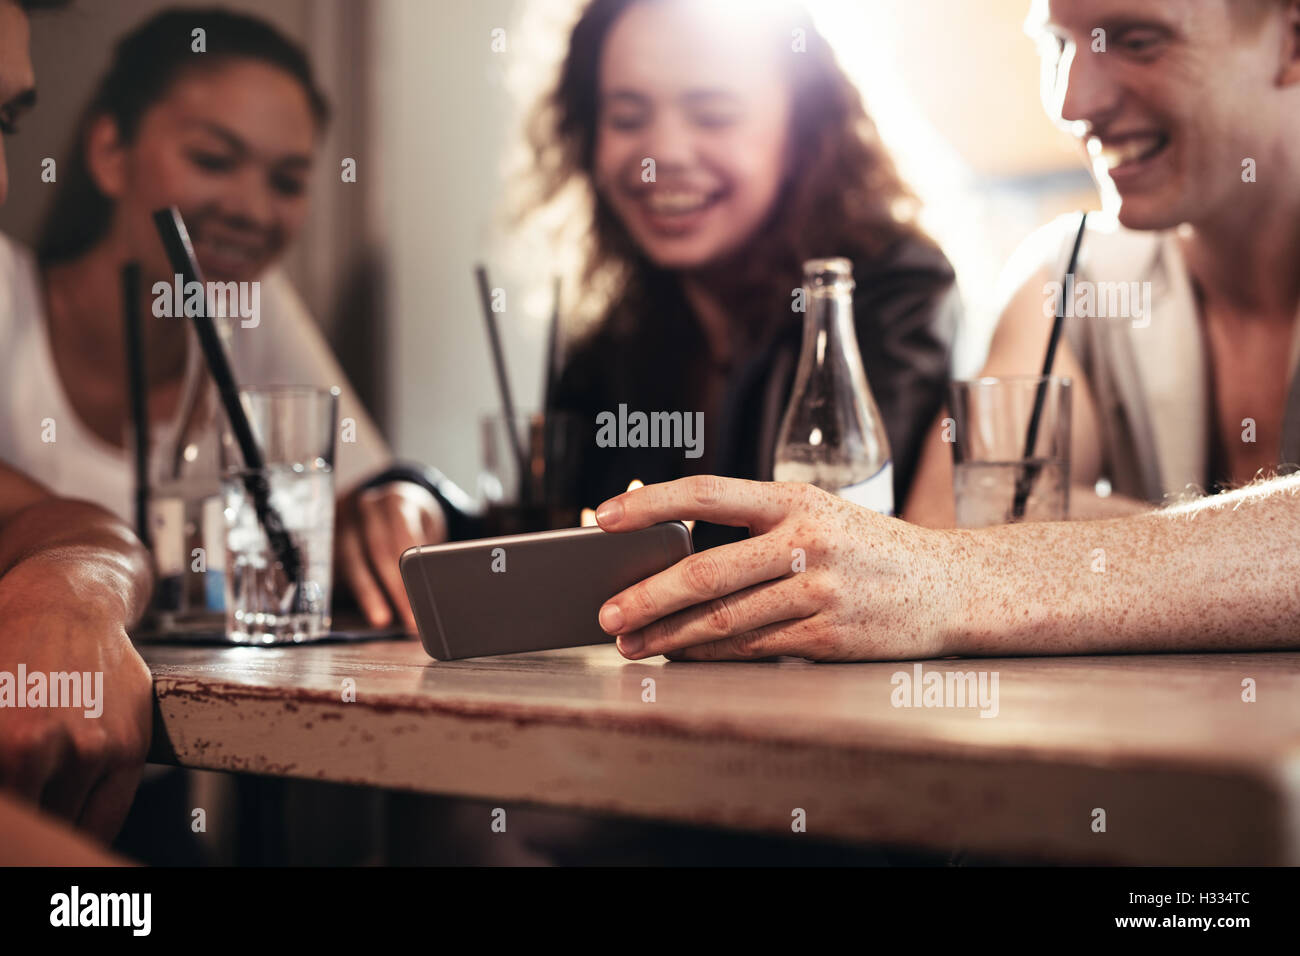 Group of people watching video on the mobile phone while sitting at cafe. Young friends looking at smartphone. - Stock Image